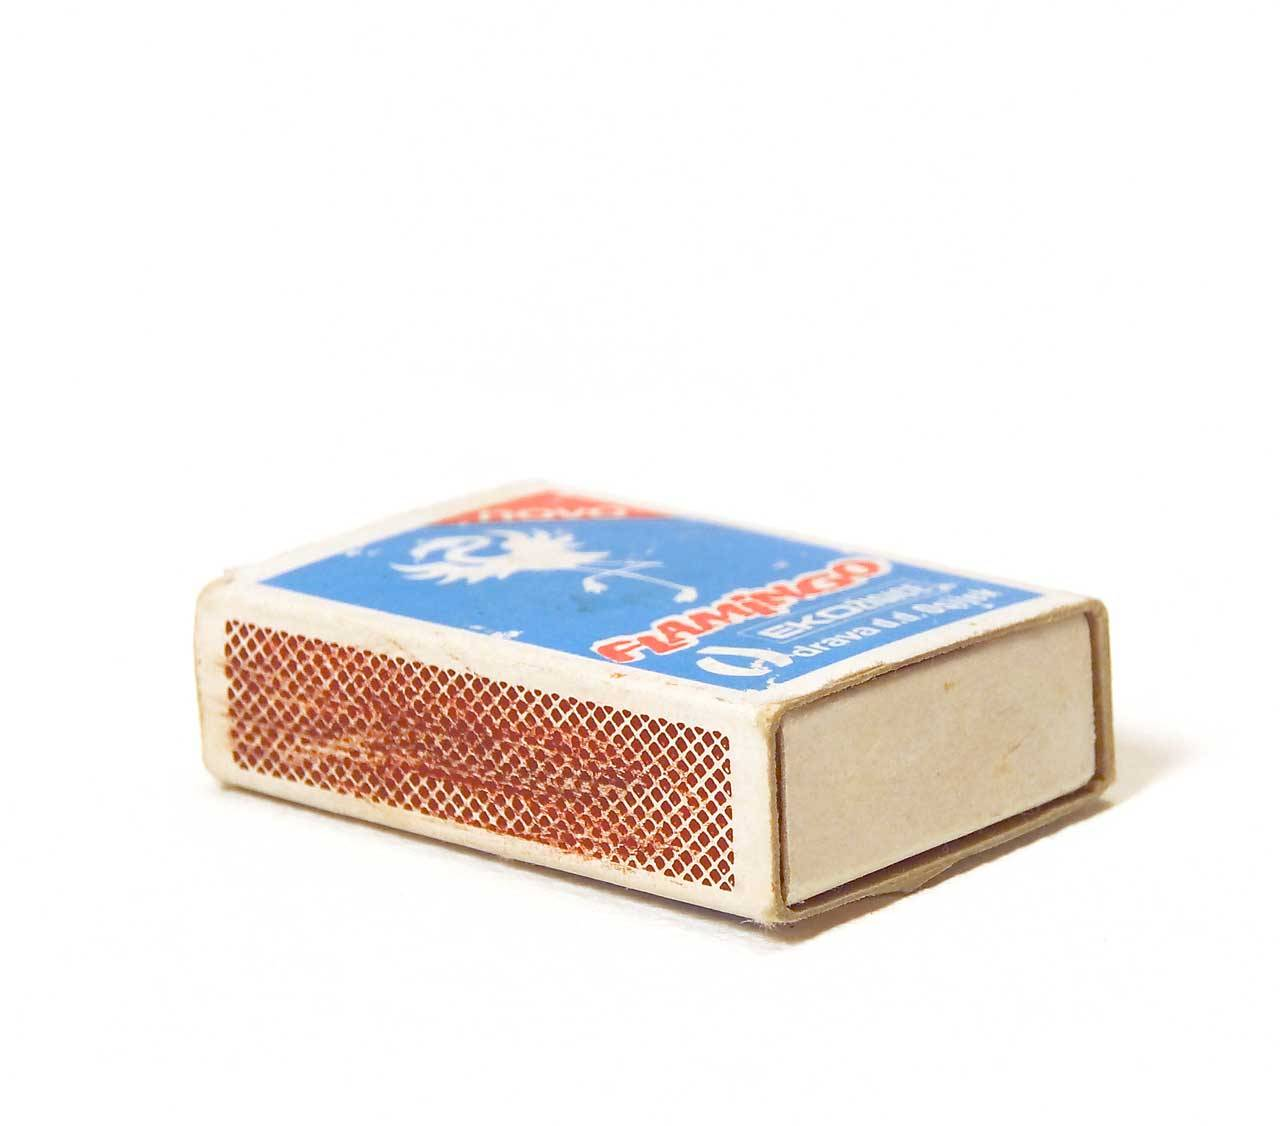 "brokenships:  A matchbox, I think it was her grandmother's6 years, still lasting on my side | Ljubljana, Slovenia""The matchbox reminds me of the passionate hugs of our first years, when she used to like folding in my arms and the closeness between us still made her happy. I am sorry I acted like an idiot, to put it mildly, and my behavior greatly contributed to her mistrust. On the other hand she, as a fierce Sagittarius, had some 'hunting passion' in her -– as long as I was reserved, her love was passionate as she was trying to 'catch' me. During the last year, when I completely gave myself up to her, her hugs became cold and infrequent. As Clarisa Pinkola E. wrote, my ex was obviously trying to push me away: 'Coldness means an end to every relationship. If you want to kill something, just stay cold. As soon as you freeze your feelings, thoughts and acts, the relationship becomes impossible. People who want to leave somebody outside in the cold ignore them and they do not invite them in. They try to avoid this person instead of seeing or hearing them.' I truly love her and whatever I do to get her out of my head, or better, out of my heart, turns out to be just a temporary plaster. Perhaps some day I will achieve what she used to say: 'to love somebody without being with them'."""